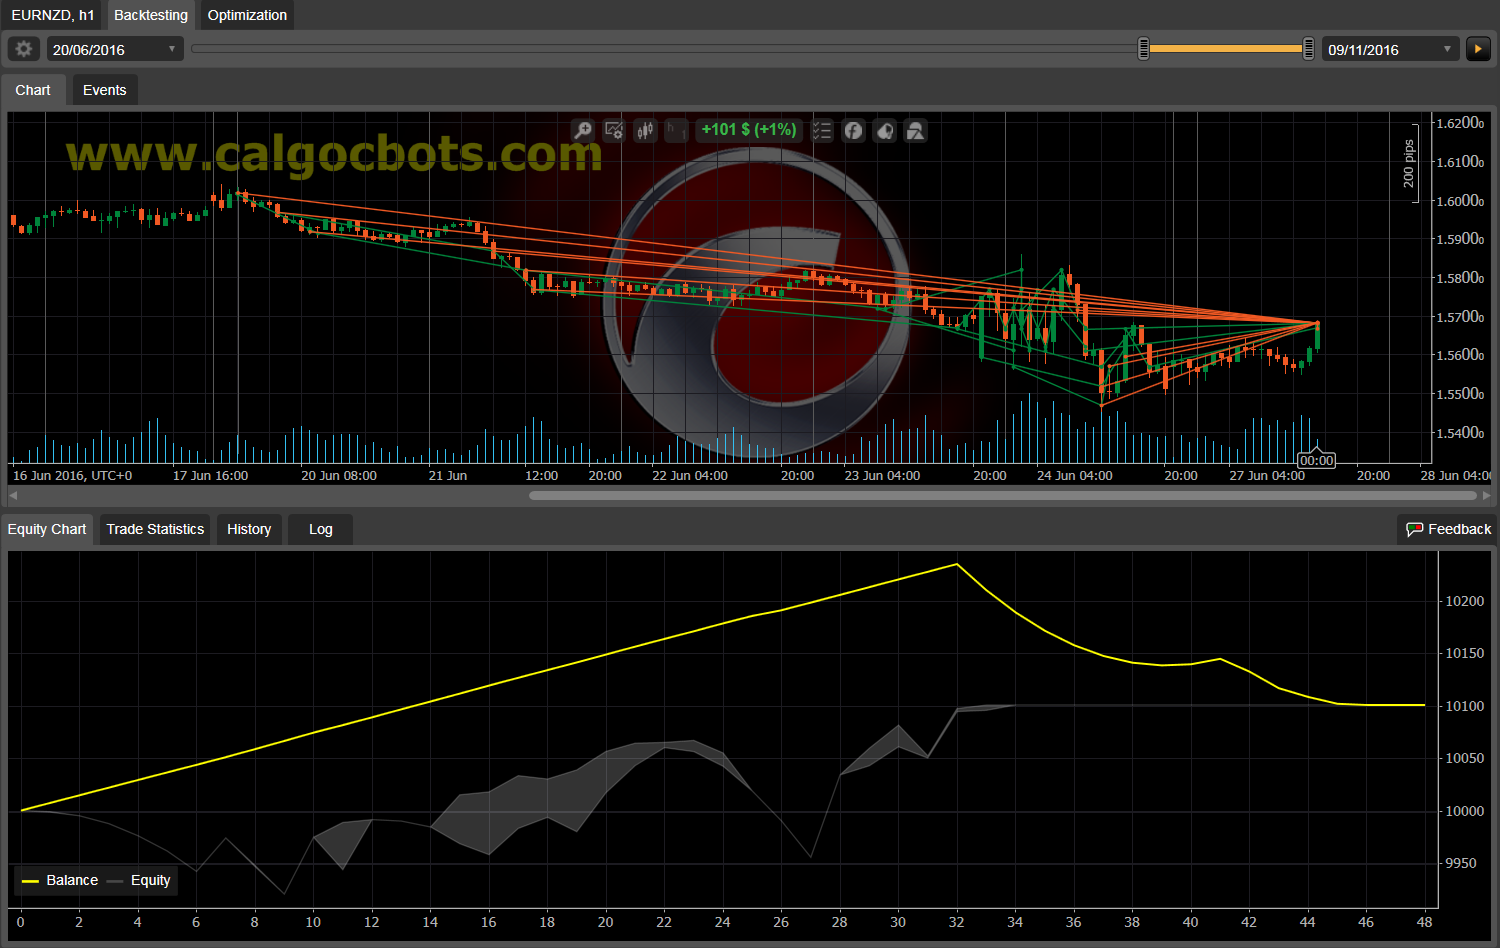 Dual Grid Hedge EUR NZD 1h cAlgo cBots cTrader 100 50 100 - 11 b